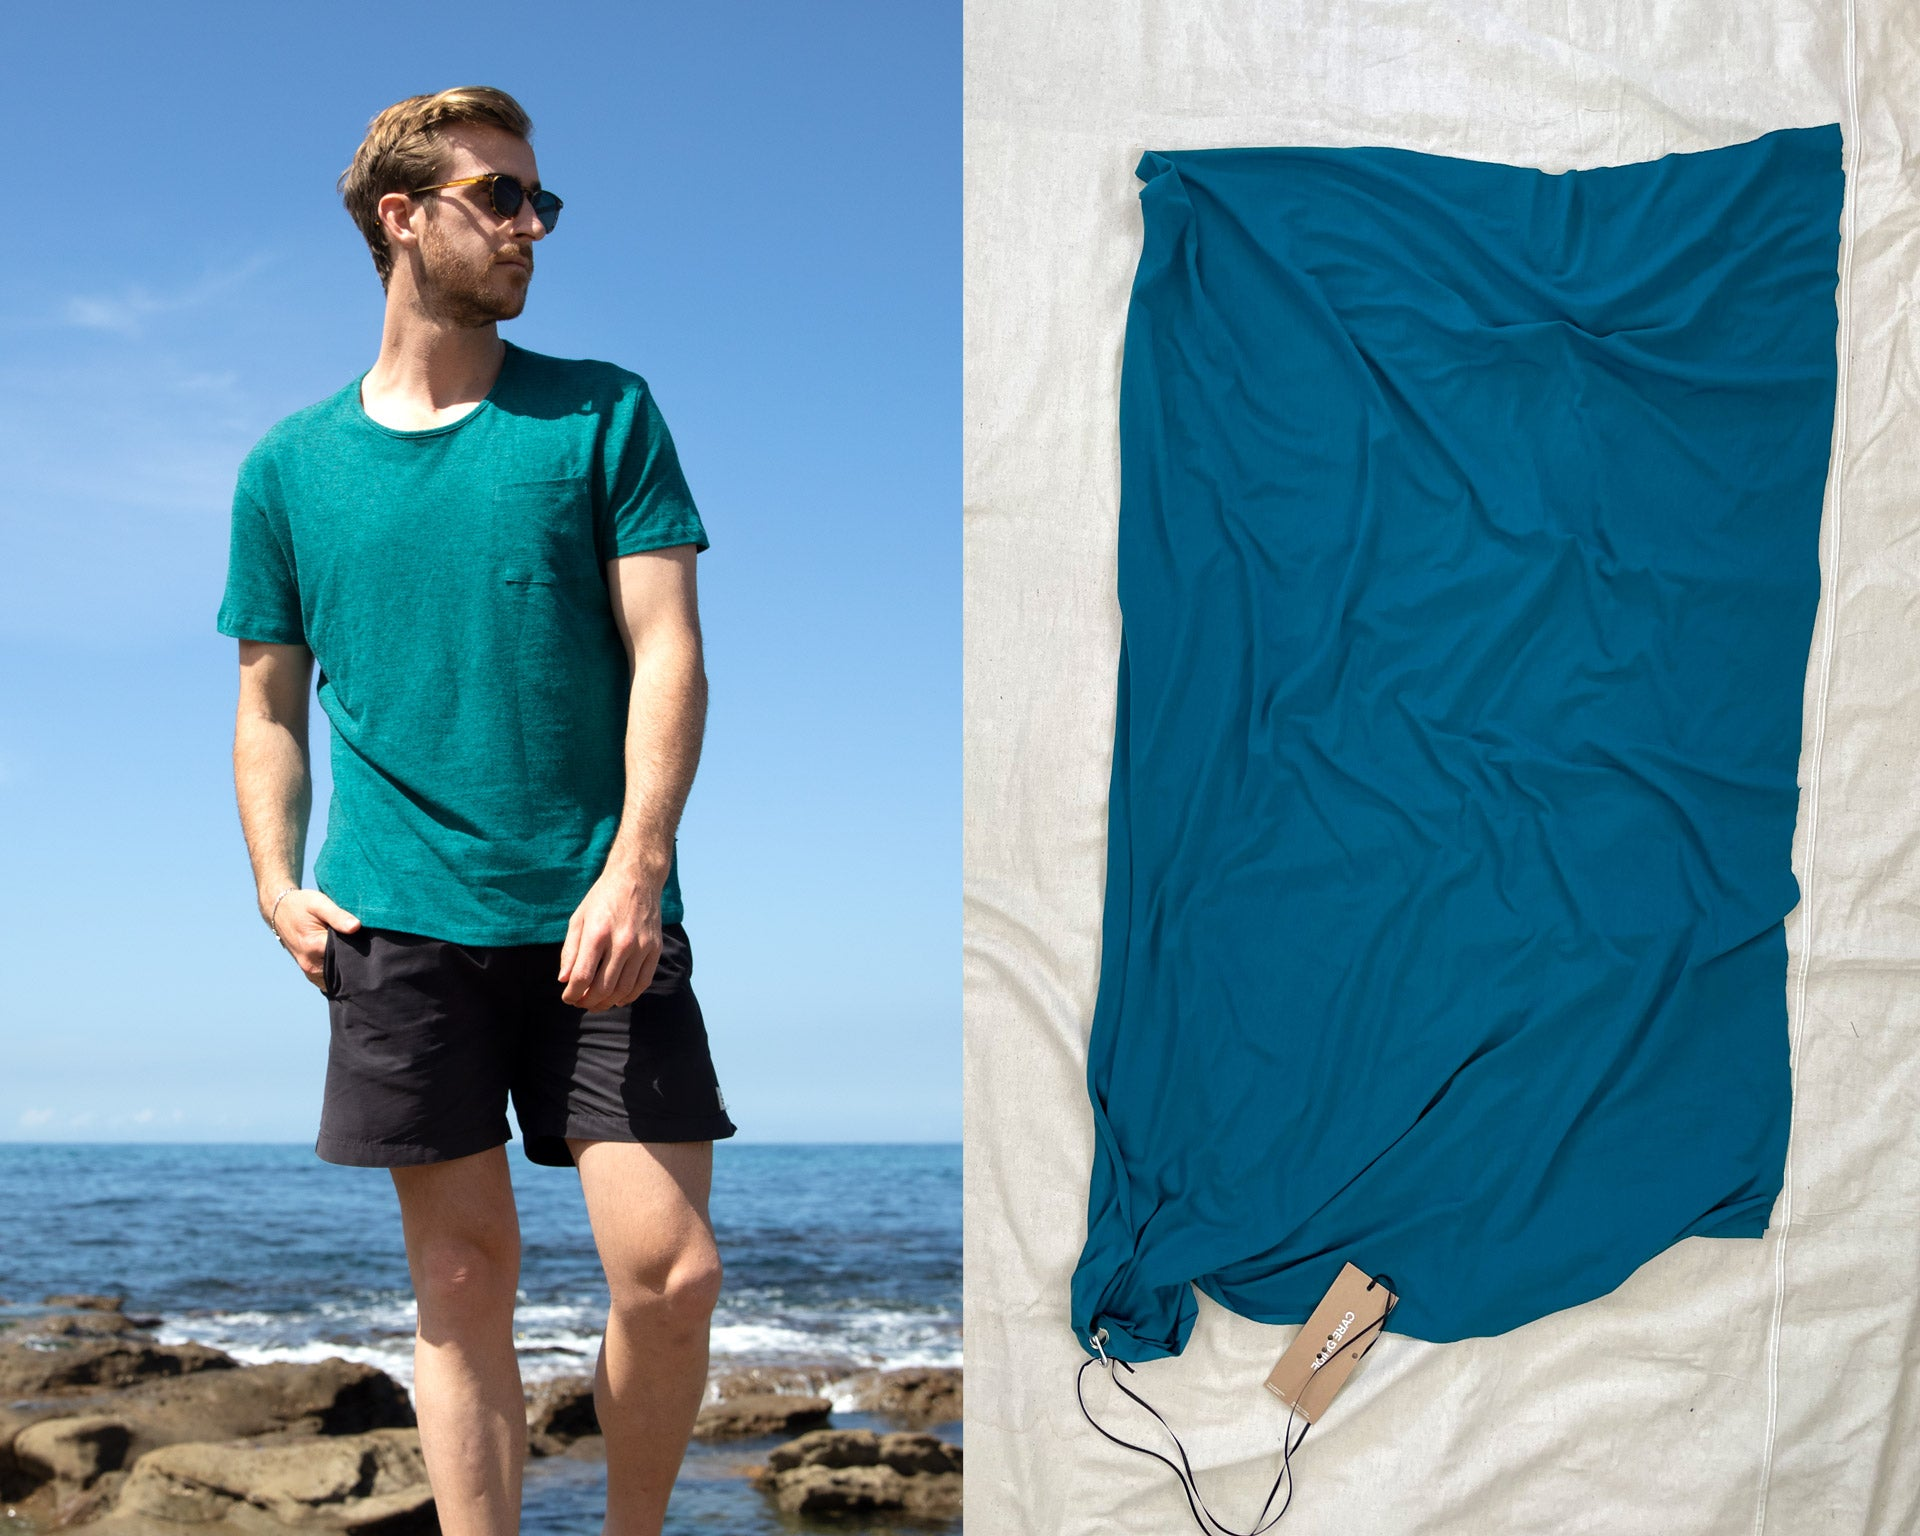 Deep Teal Merino Wool –limited edition for summer